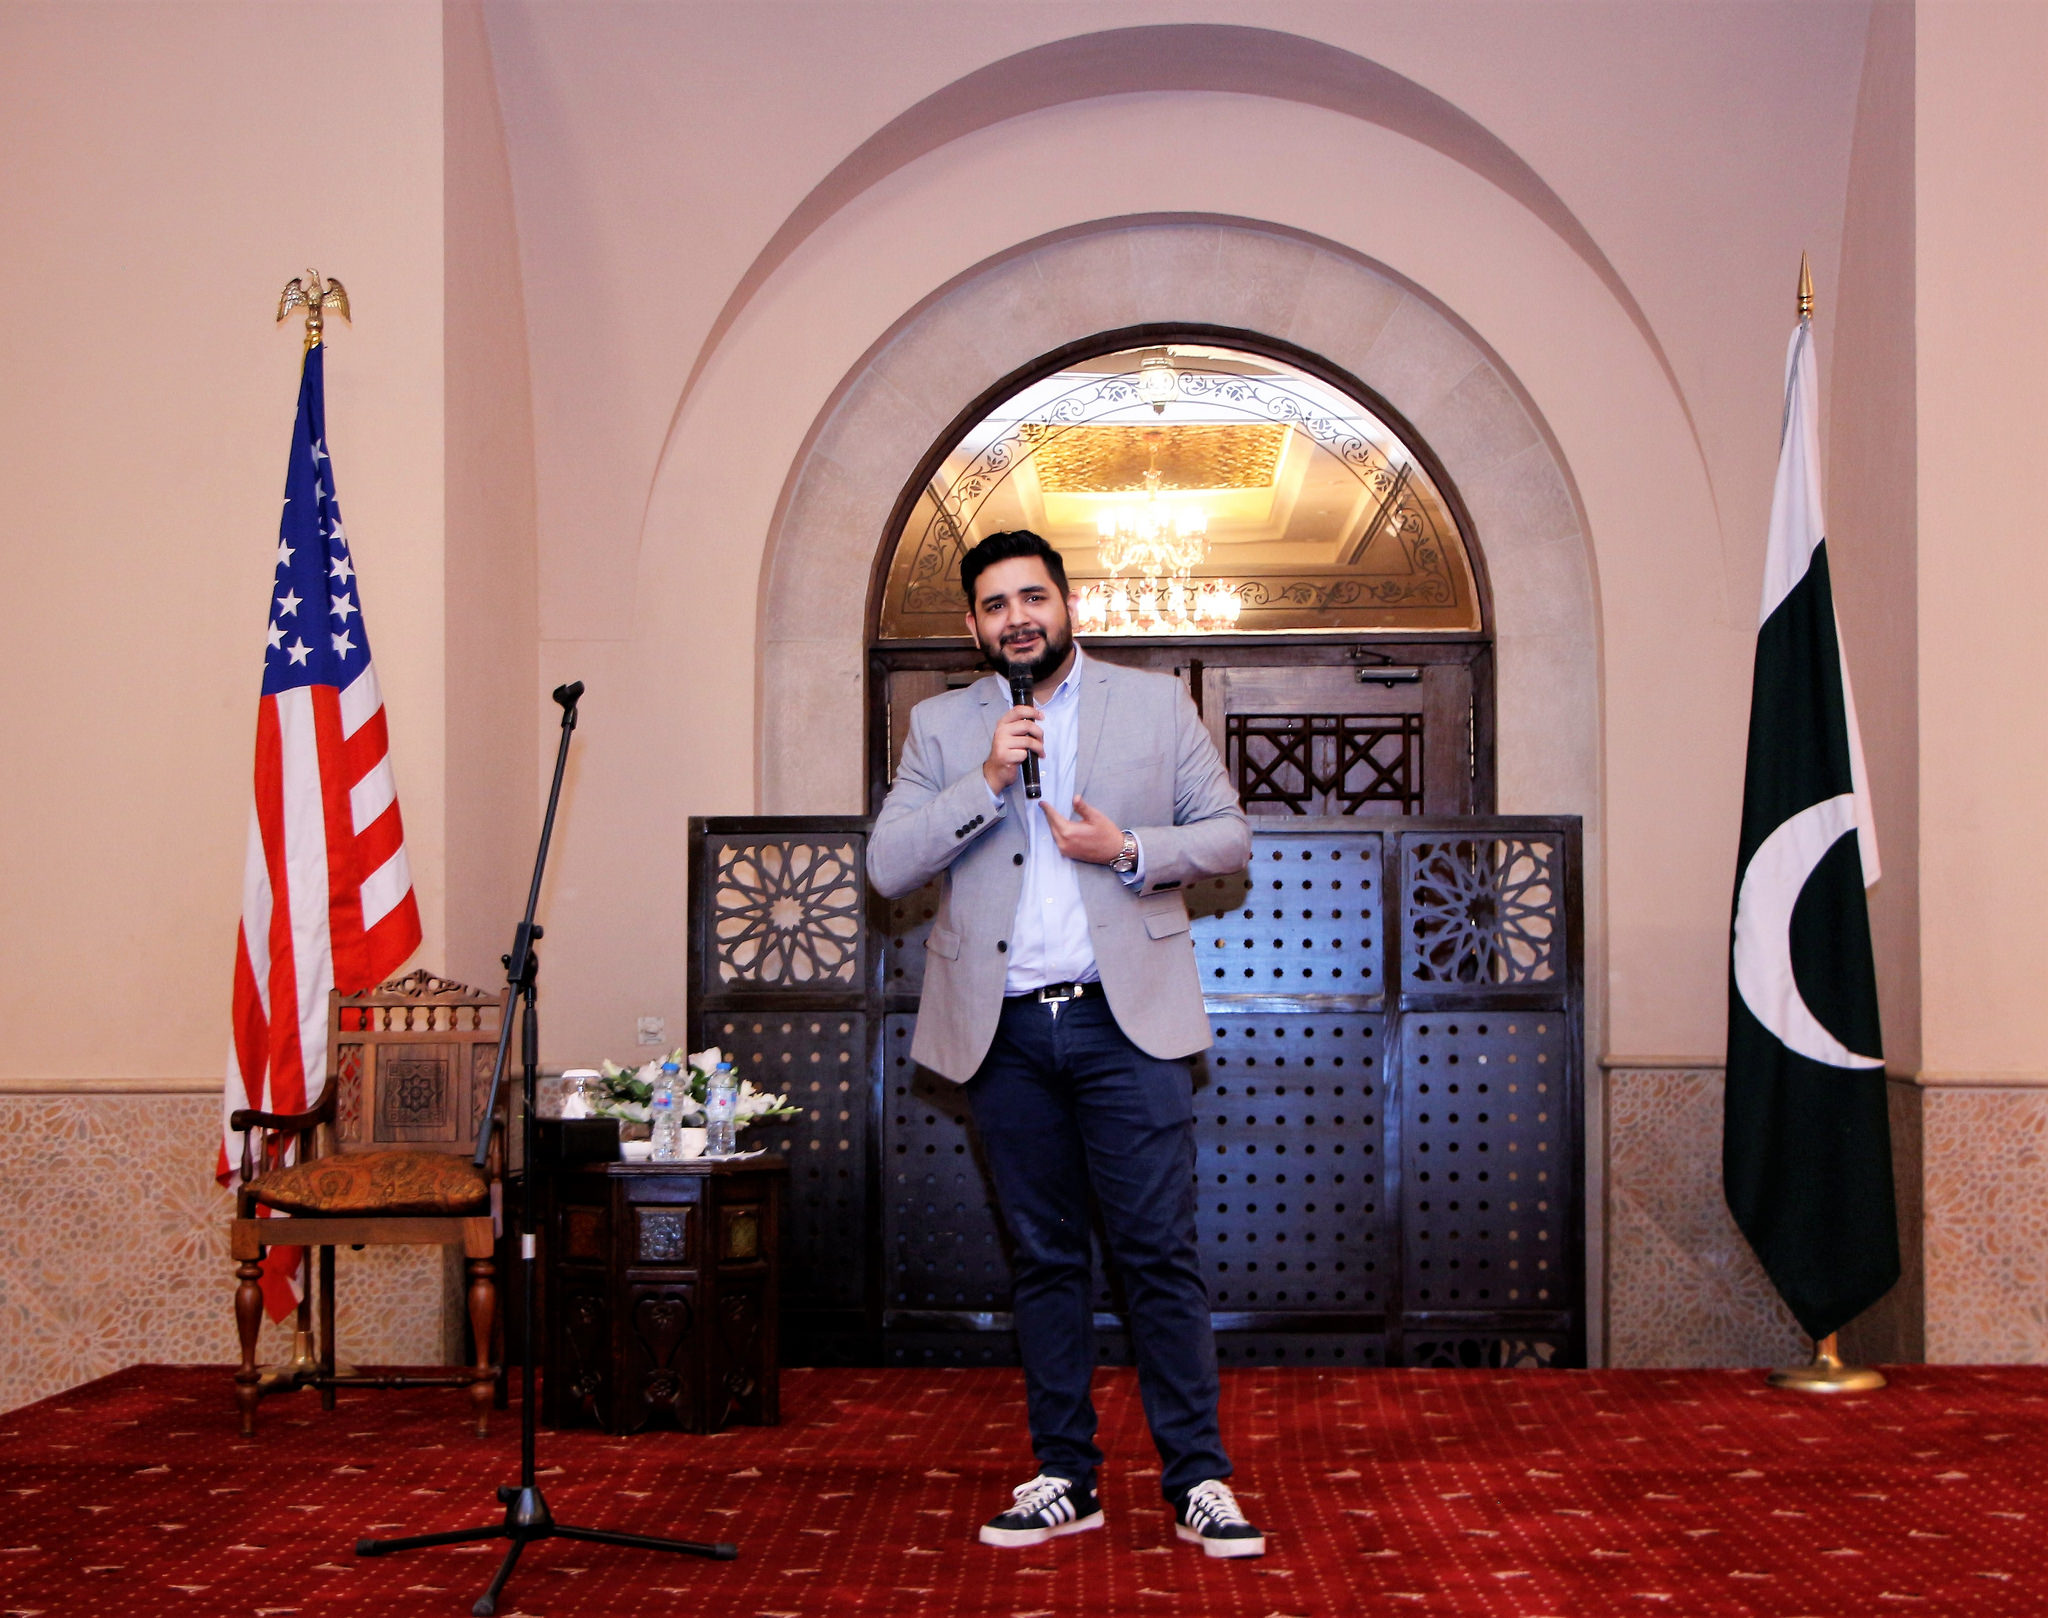 Fulbright alumus, Shehzad Ghias solicited many laughs through his stand-up routine